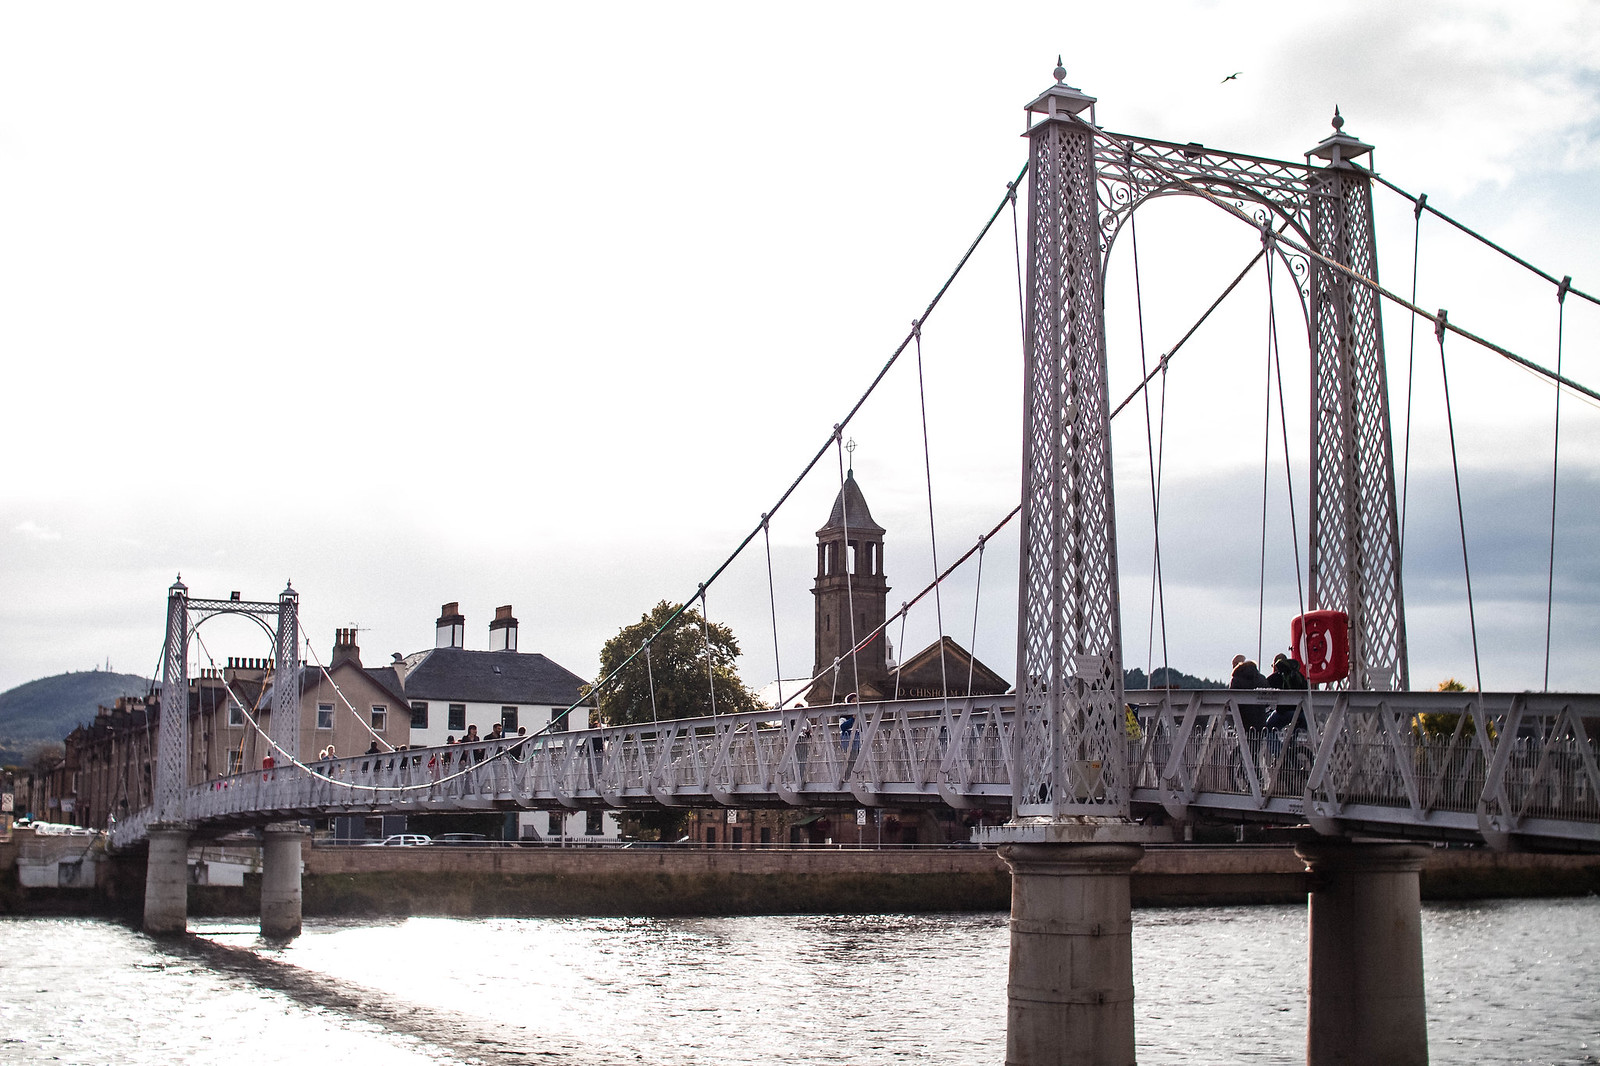 Inverness Scotland accommodation NC500 route travel blogger UK